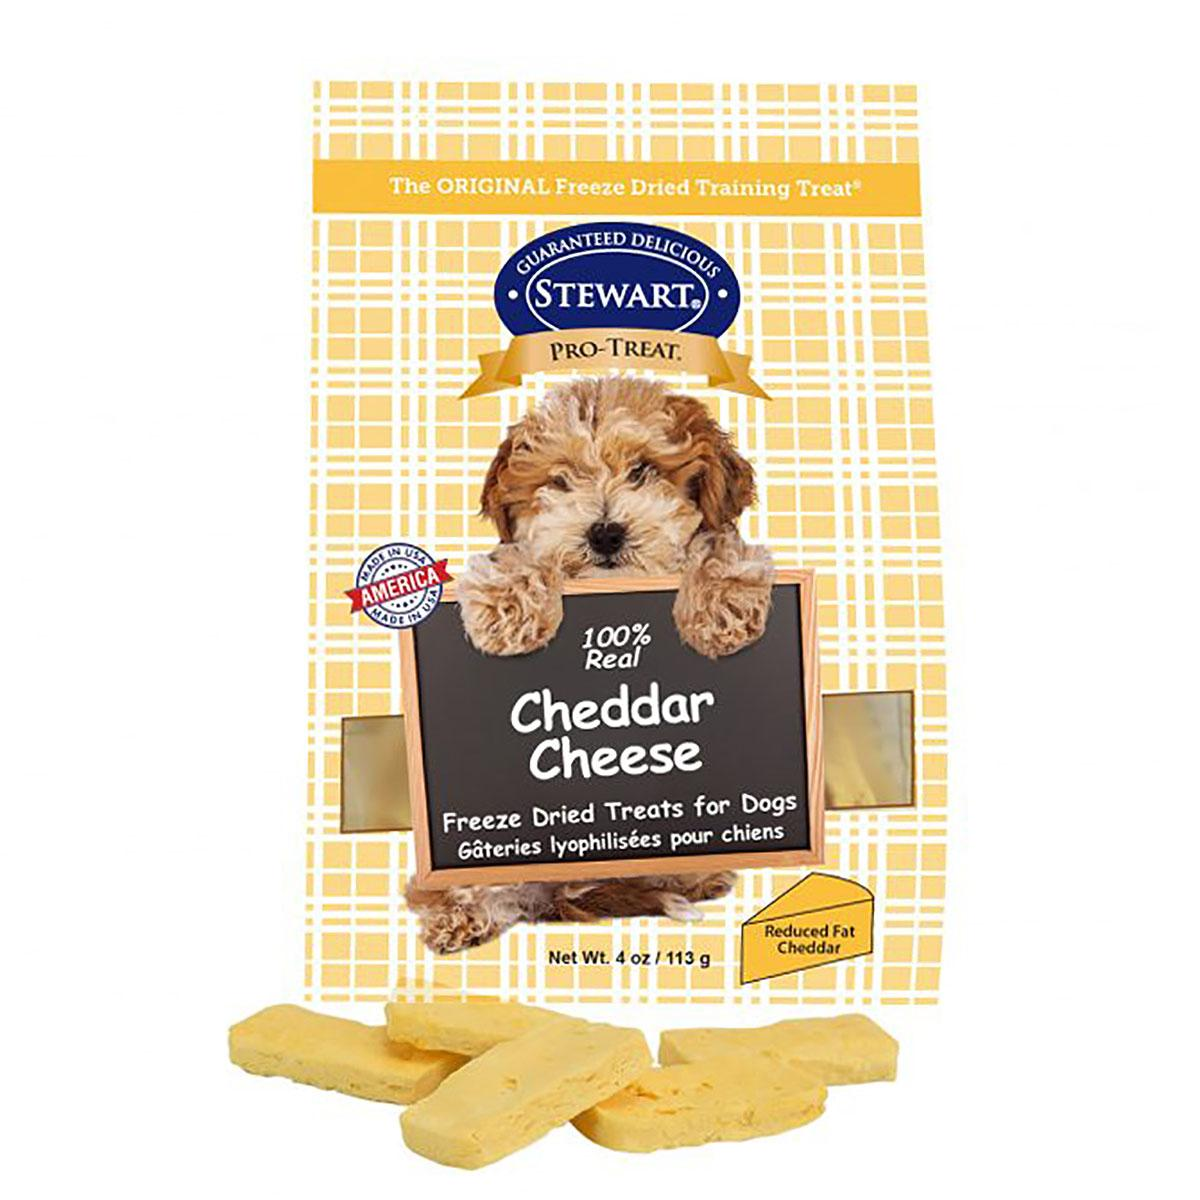 Stewart Pro-Treat Cheddar Cheese Dog Treat Pouch - 4 ounces